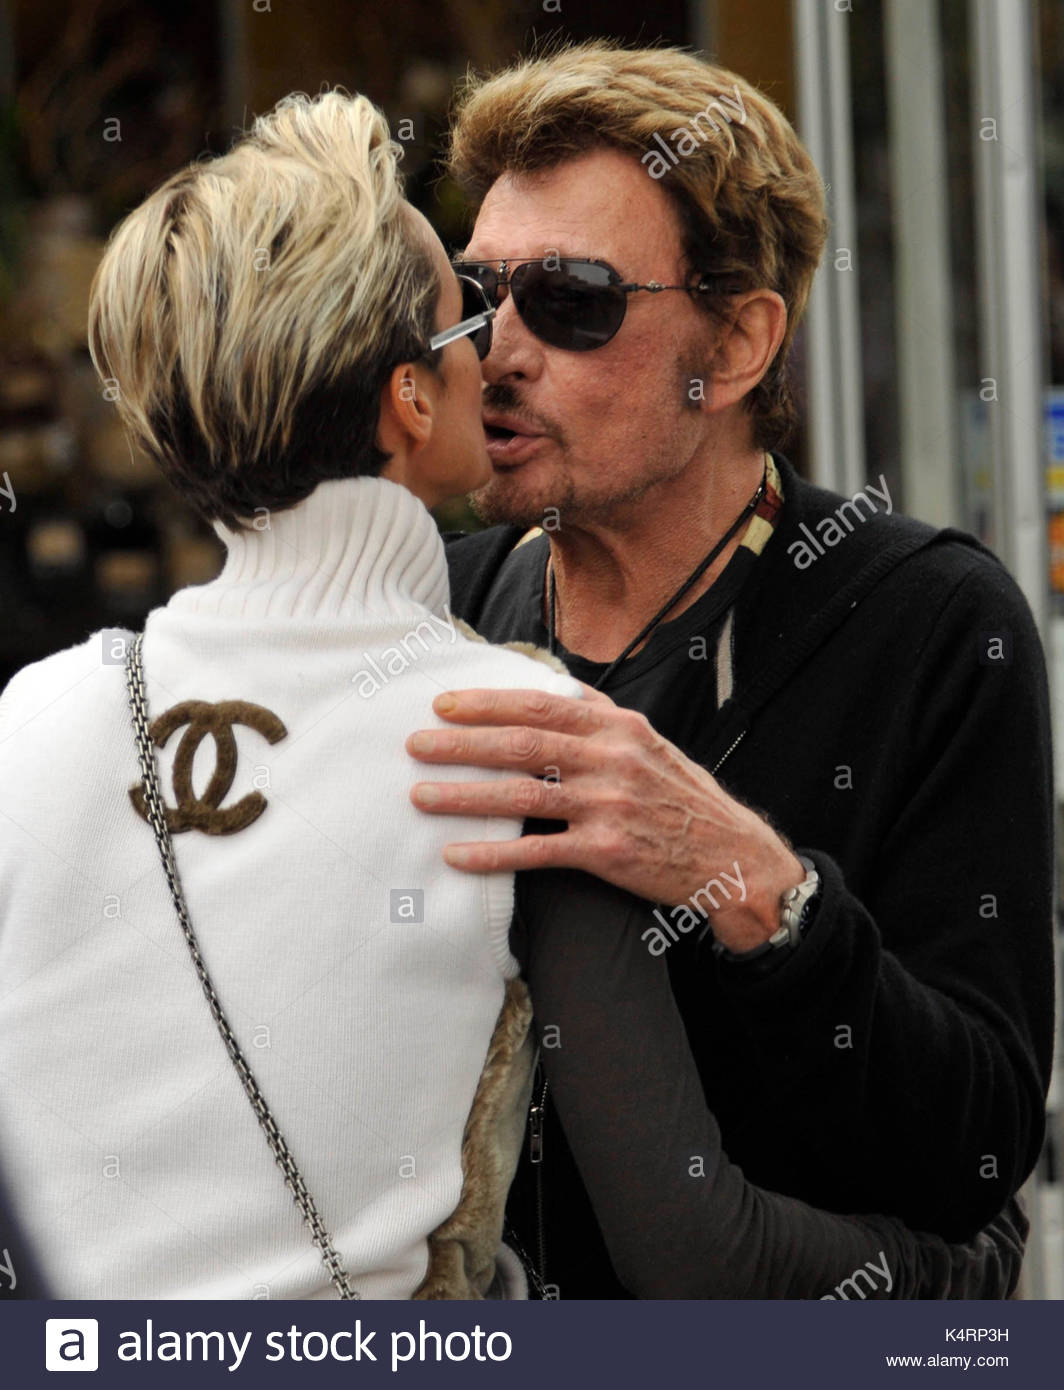 johnny hallyday et laeticia hallyday le chant fran ais johnny hallyday l gende avec sa femme. Black Bedroom Furniture Sets. Home Design Ideas